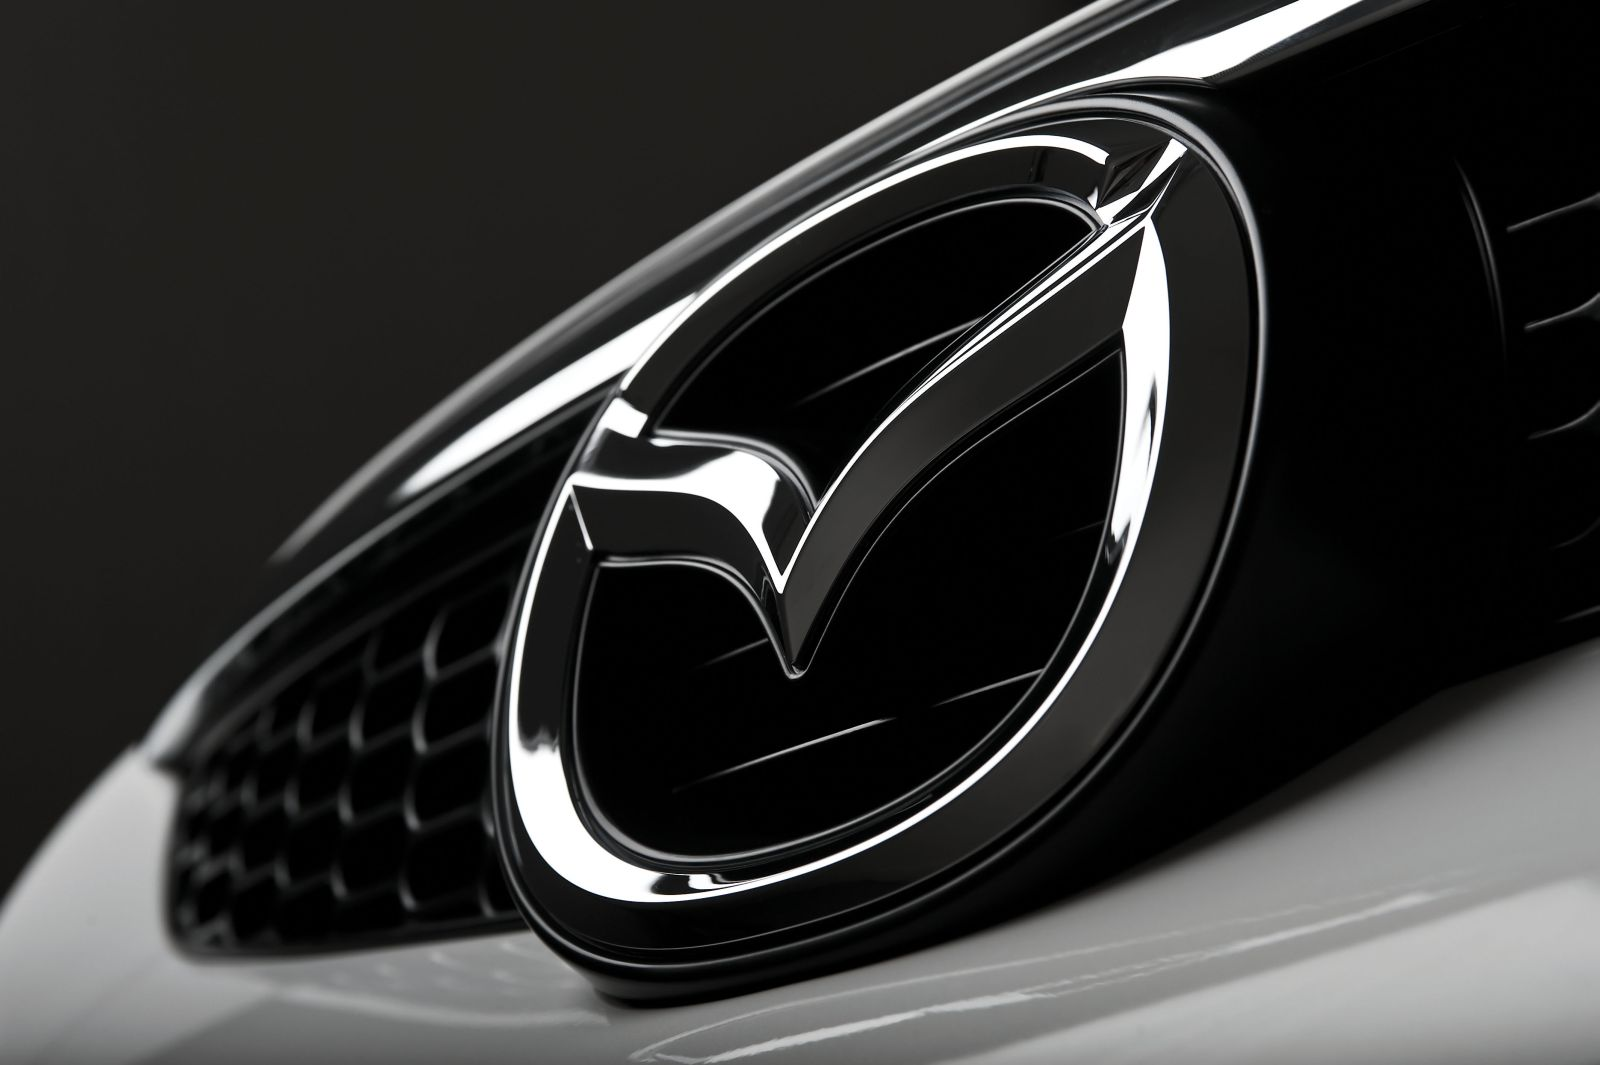 Mazda logo mazda car symbol meaning and history car brand names mazda symbol biocorpaavc